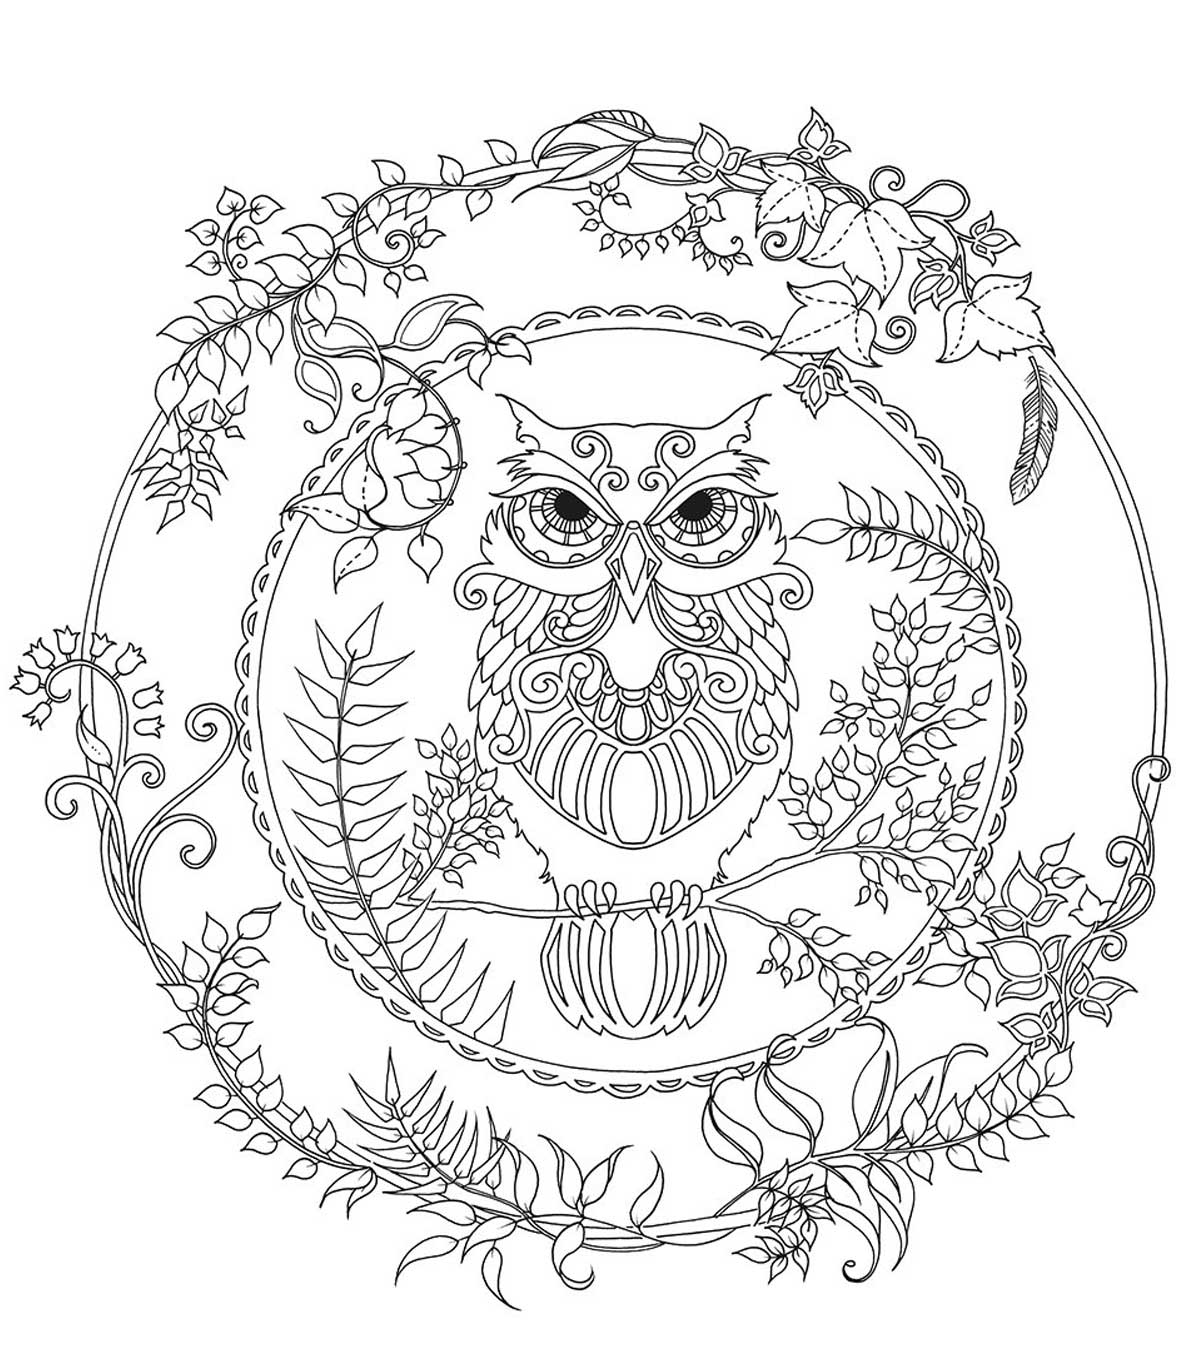 enchanted forest coloring pages Chronicle Books Enchanted Forest Coloring Book | JOANN enchanted forest coloring pages